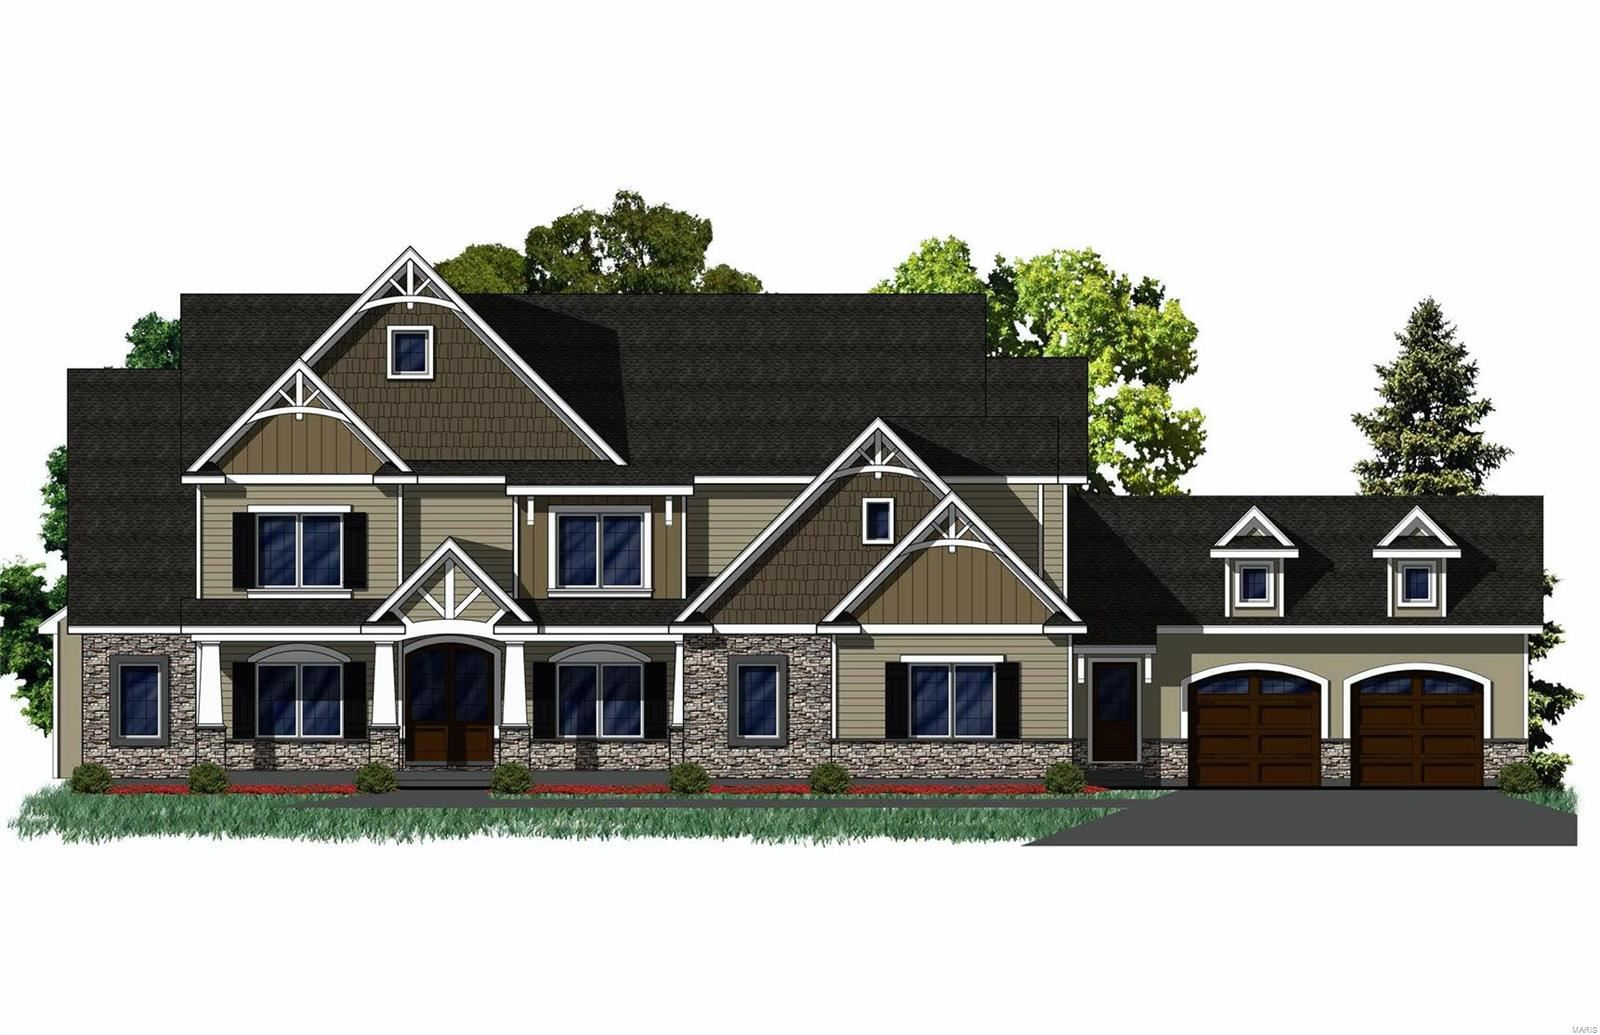 13229 Stone Ct TBB (Lot 2), Town and Country, MO 63131 - MLS#: 20056385